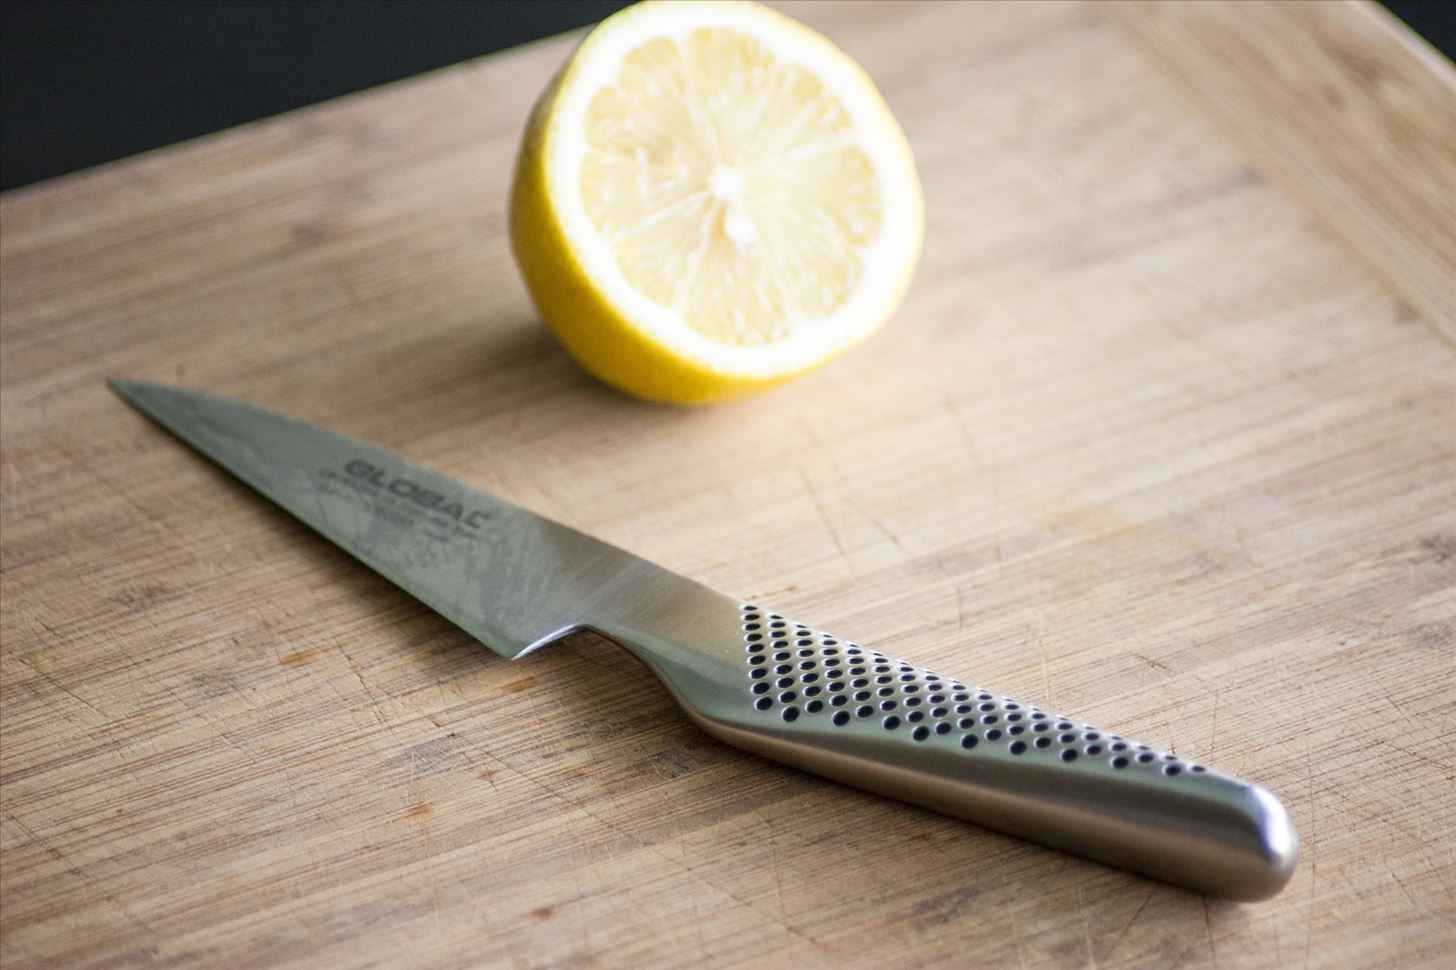 knives 101 how to care for your knives like a pro food hacks if you make these tips a habit you ll find that it isn t hard at all to give your knives the tlc they deserve most high end knives can last decades